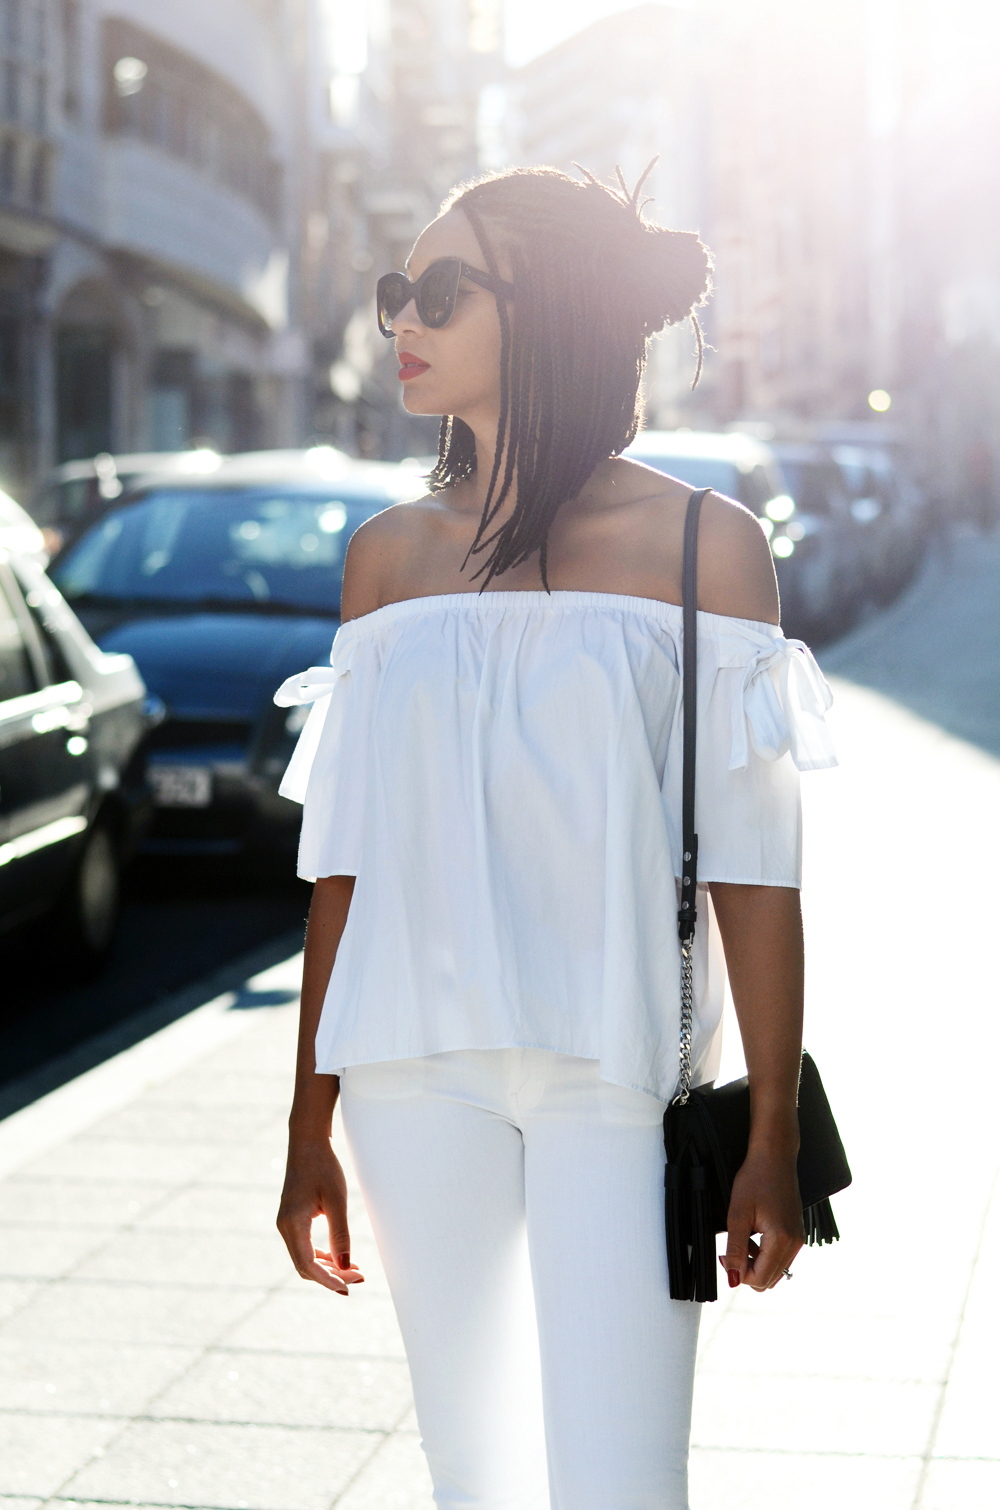 mercredie-blog-fashion-blogger-mode-geneve-suisse-santander-celine-marta-all-white-outfit-flare-elisabetta-franchetti-ceinture-kooples6